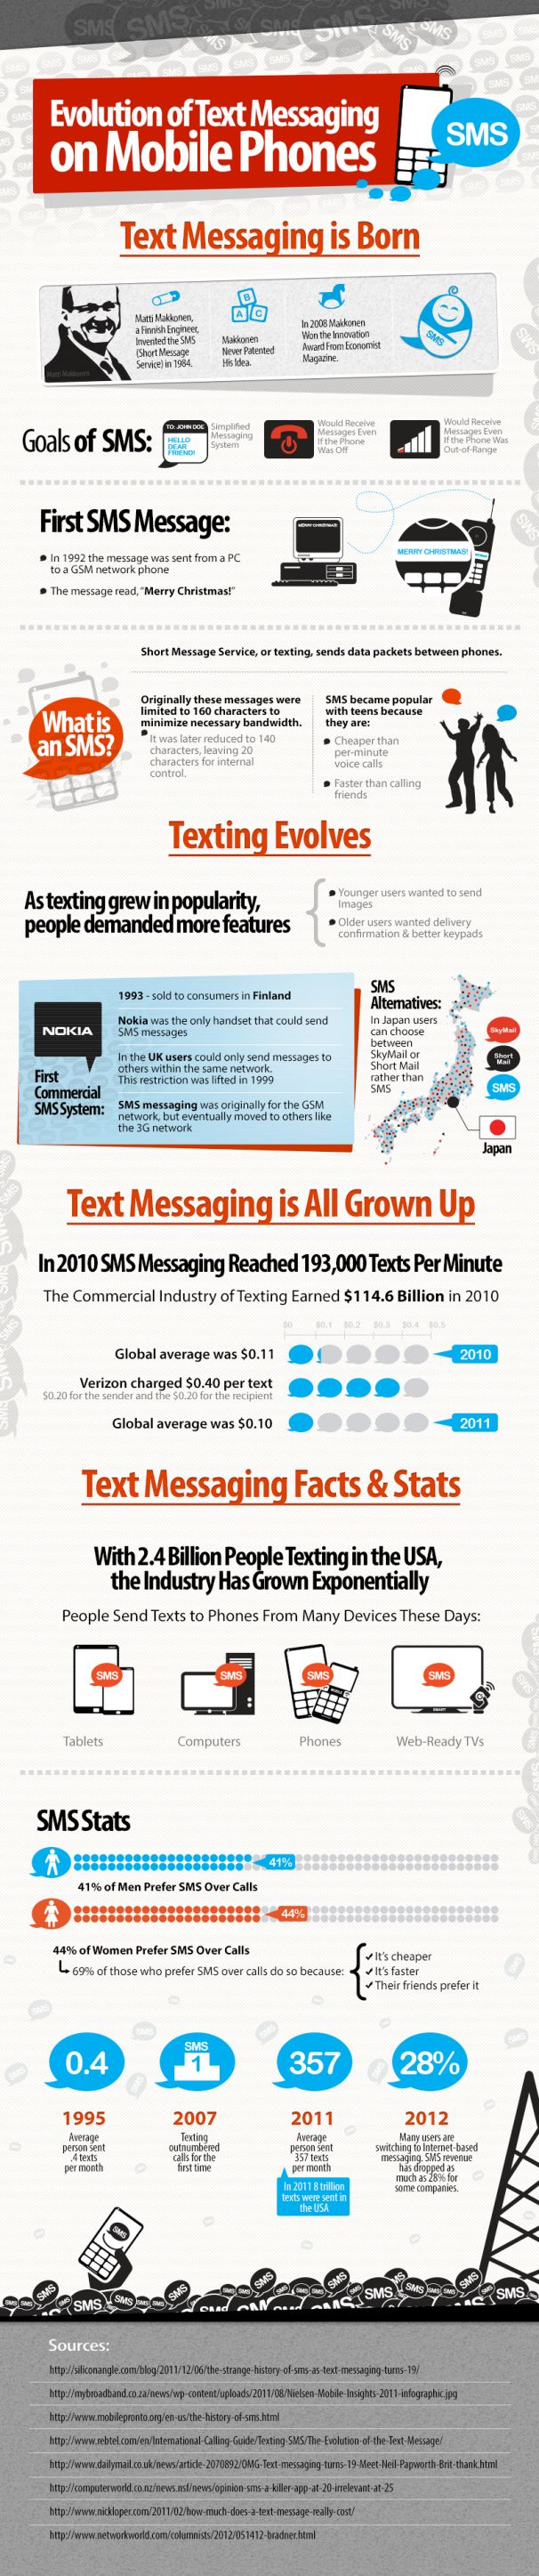 Go forward by looking back - Evolution of Text Messaging.